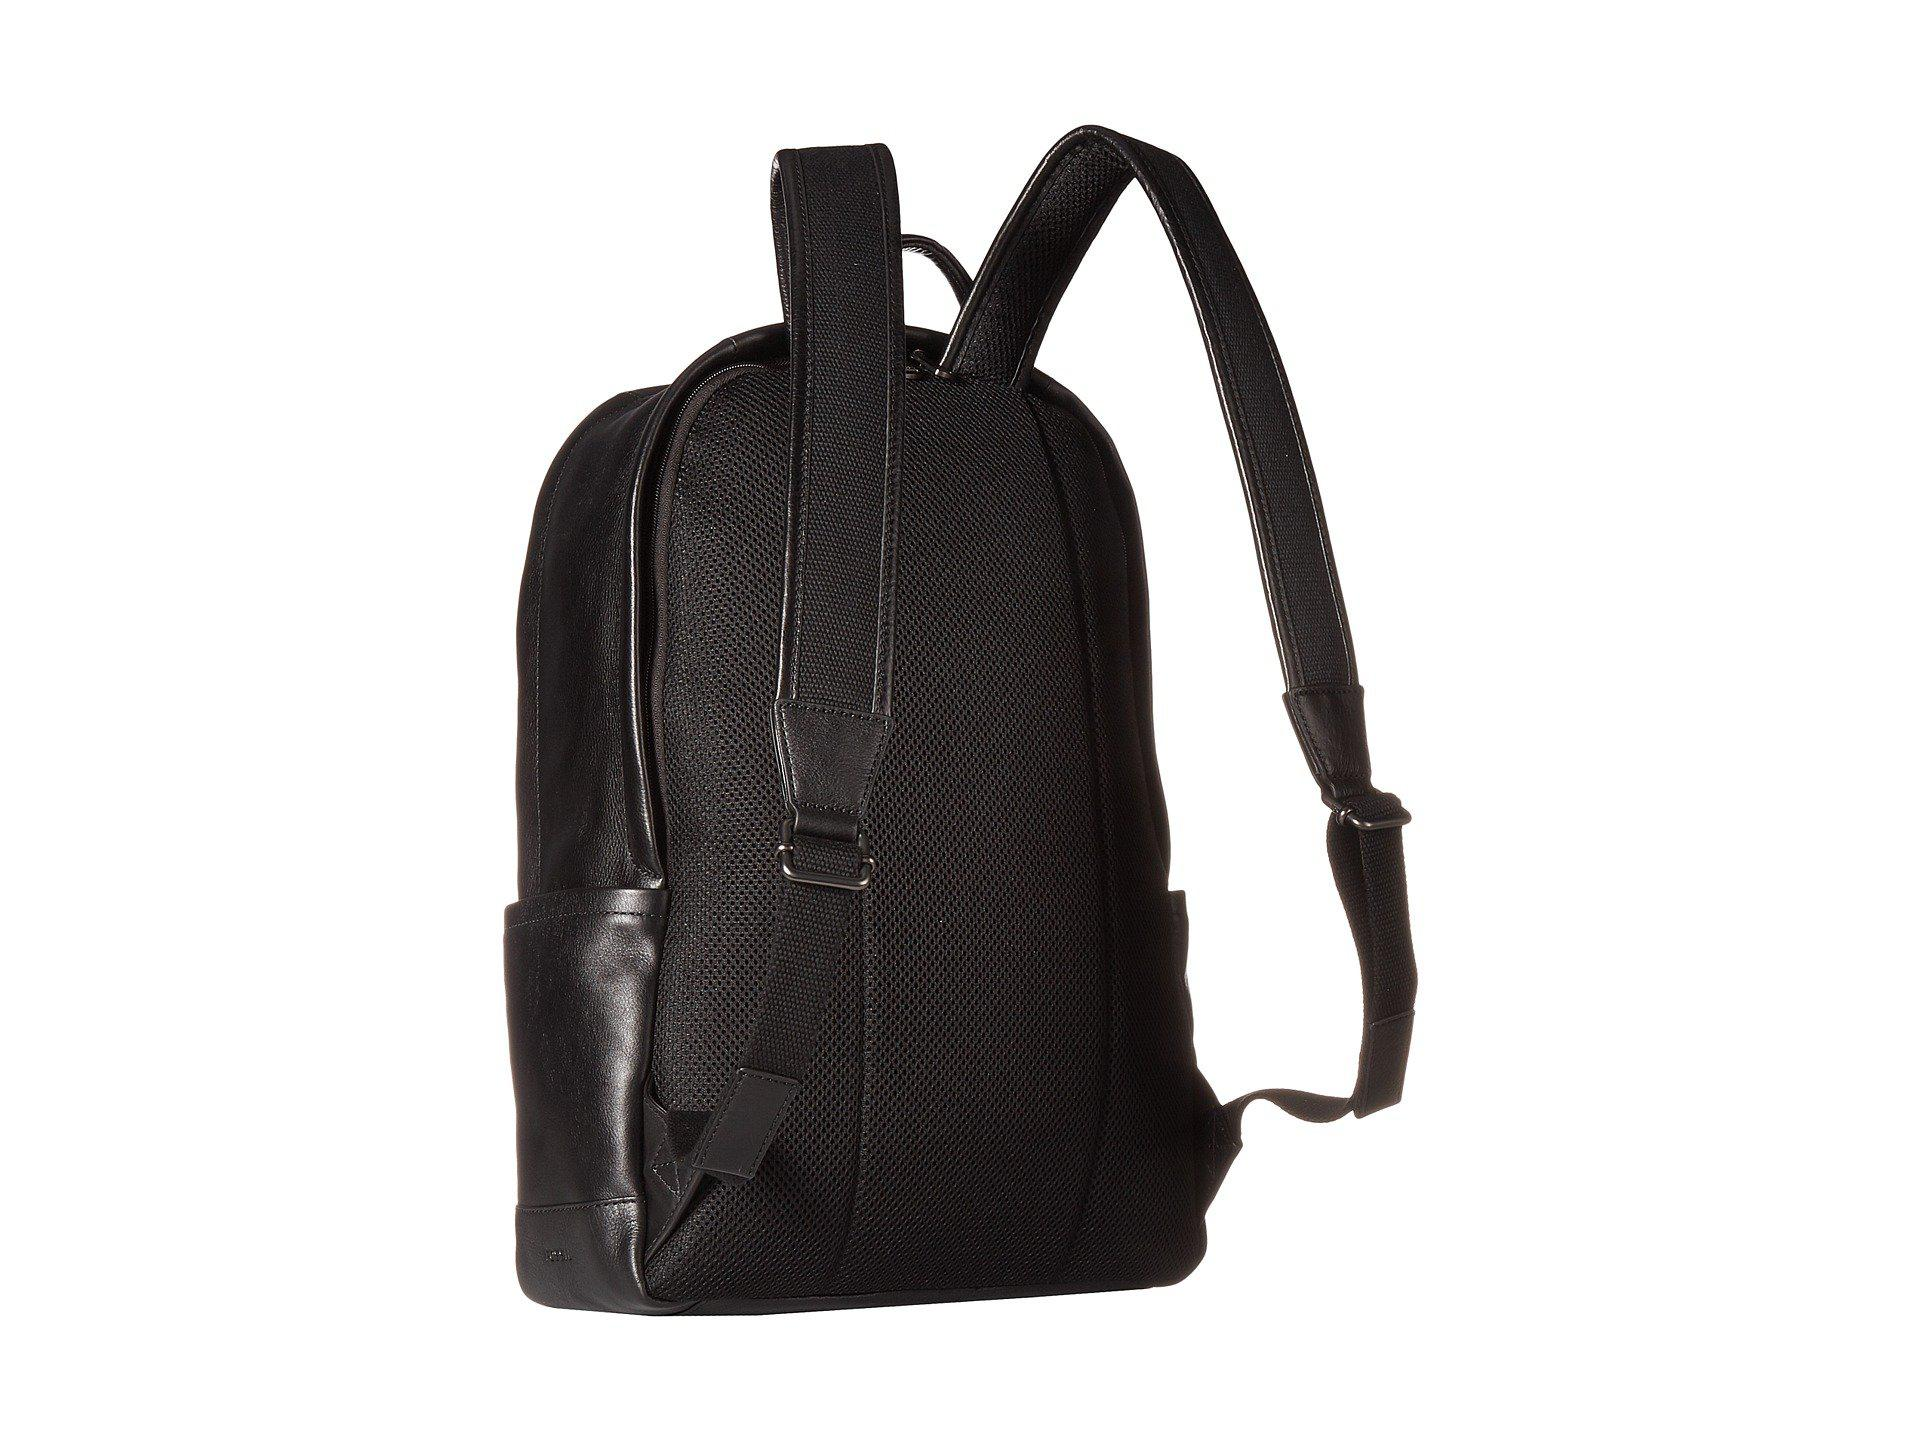 Lyst - Fossil Buckner Backpack in Black 8e05506484078